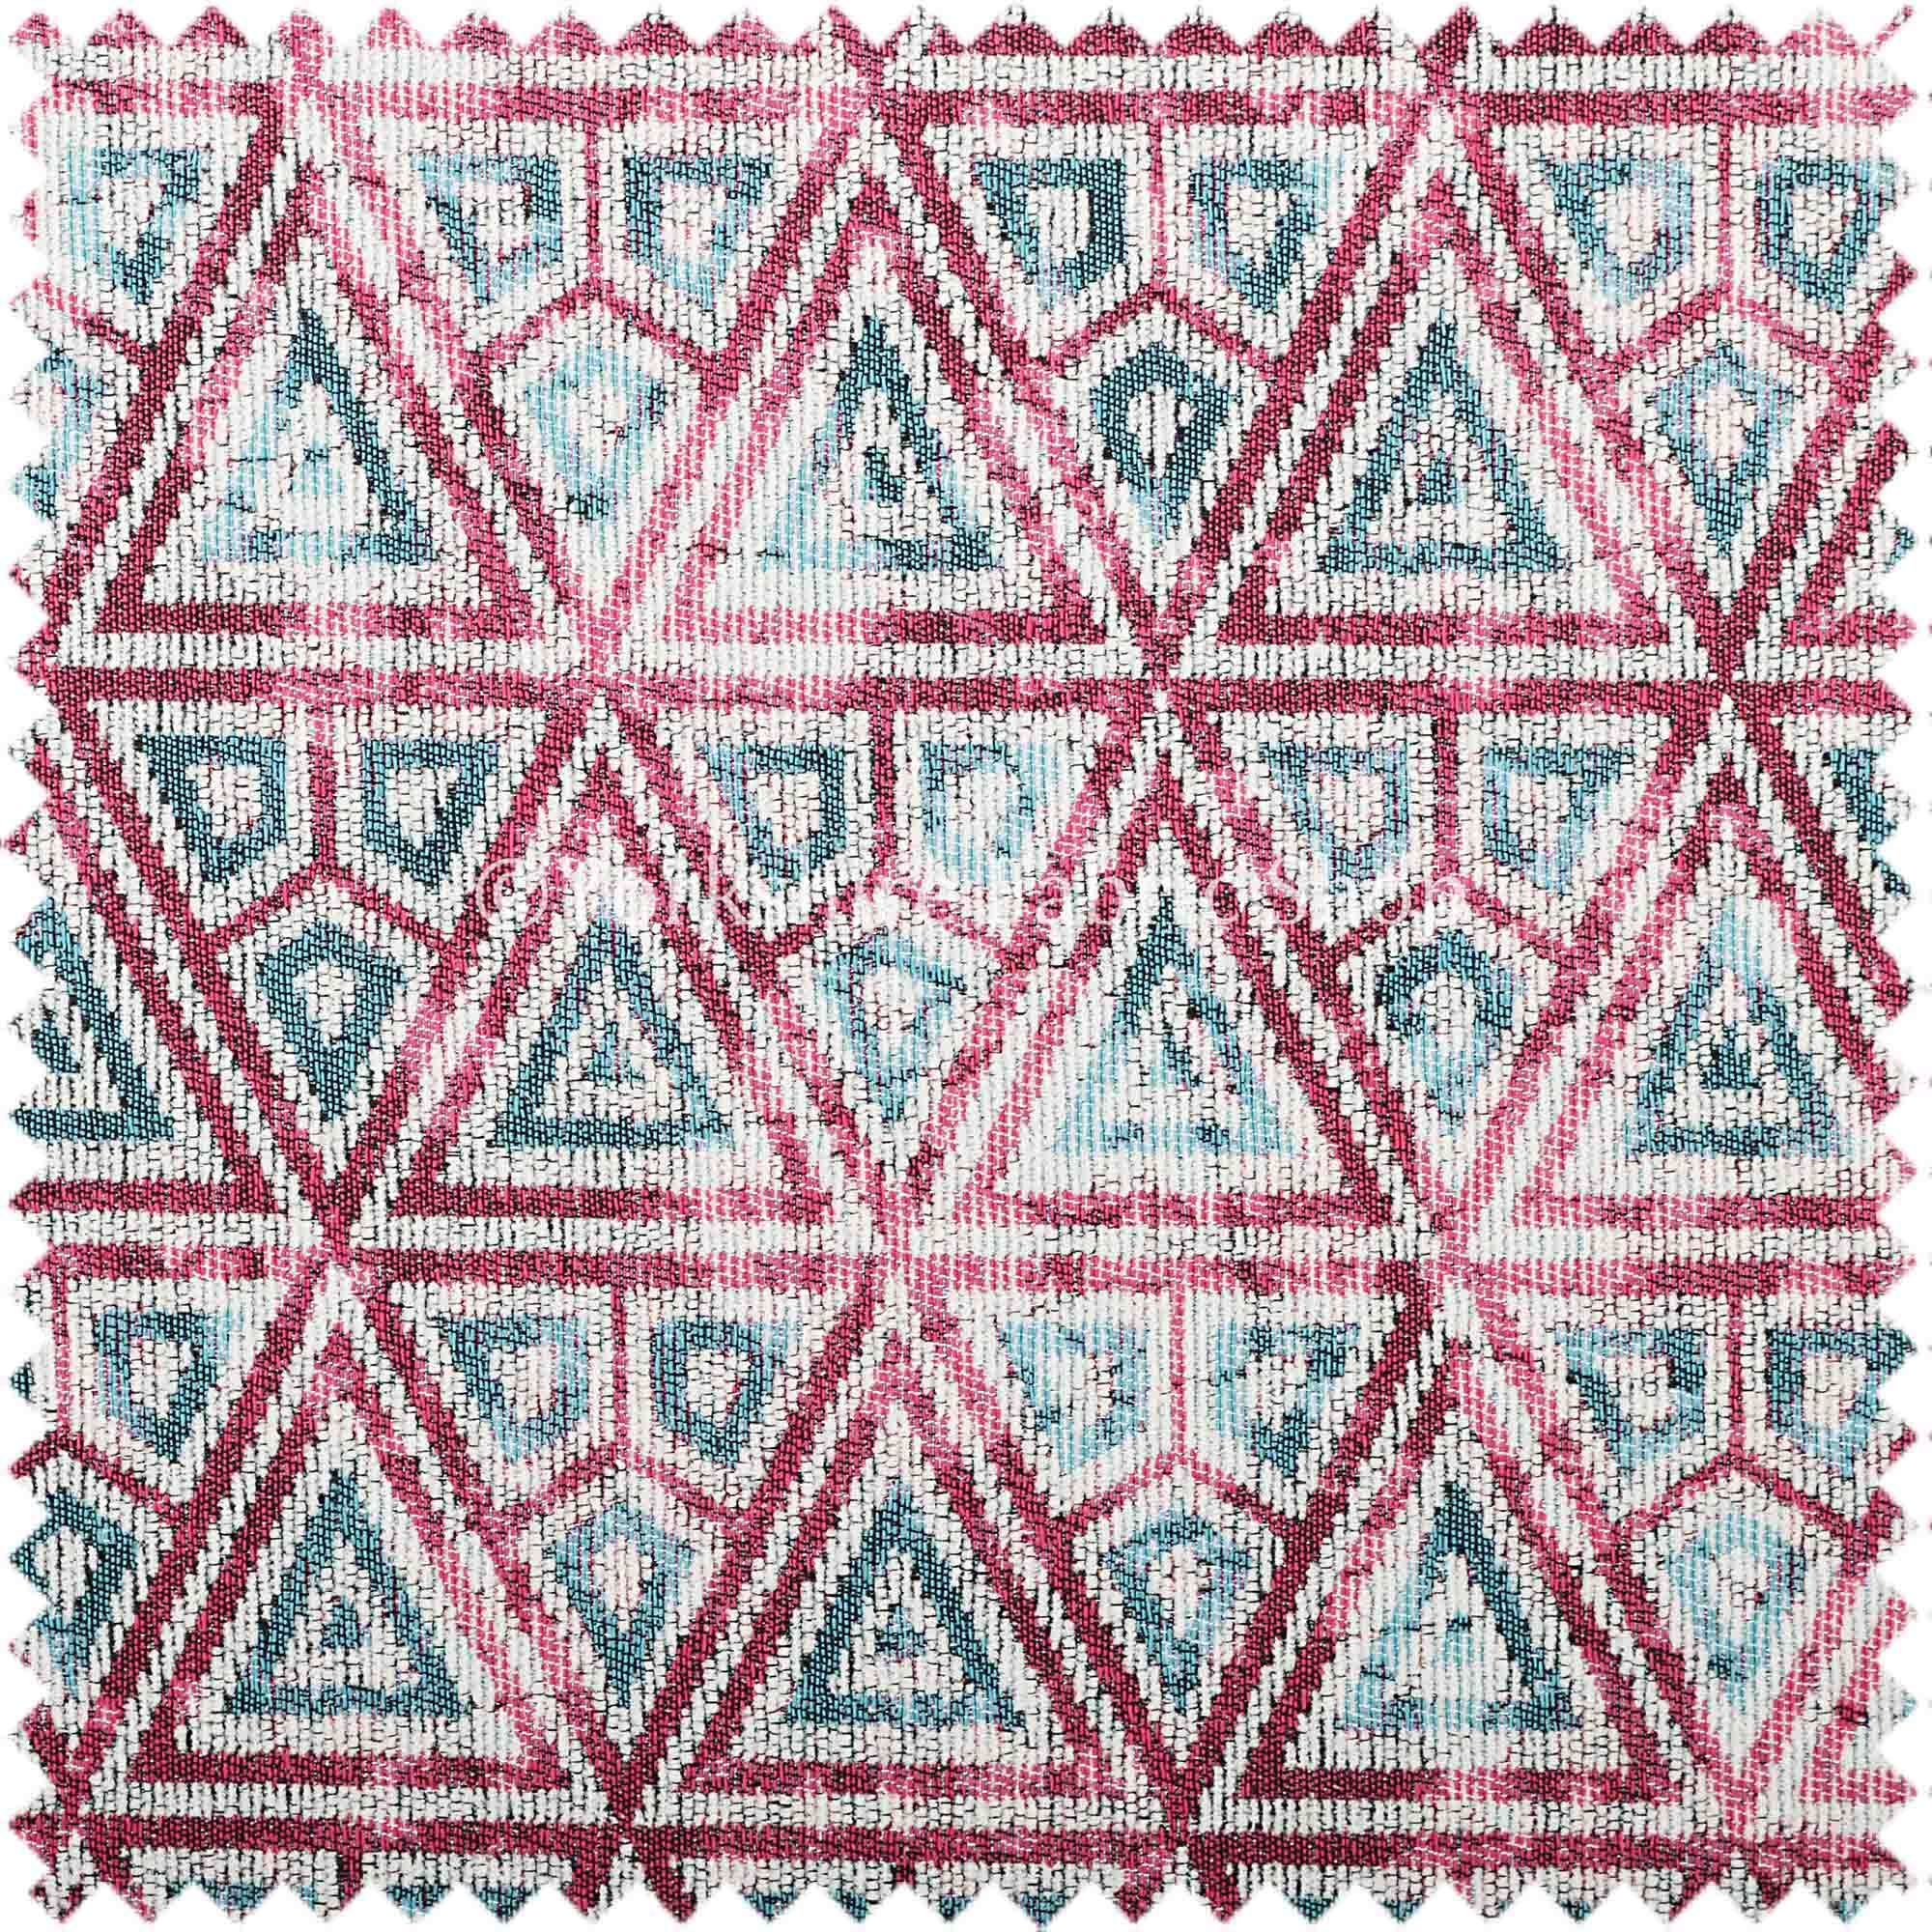 Pink White Blue Balanced Shapes Design Soft Chenille Upholstery - Designer upholstery fabric teal